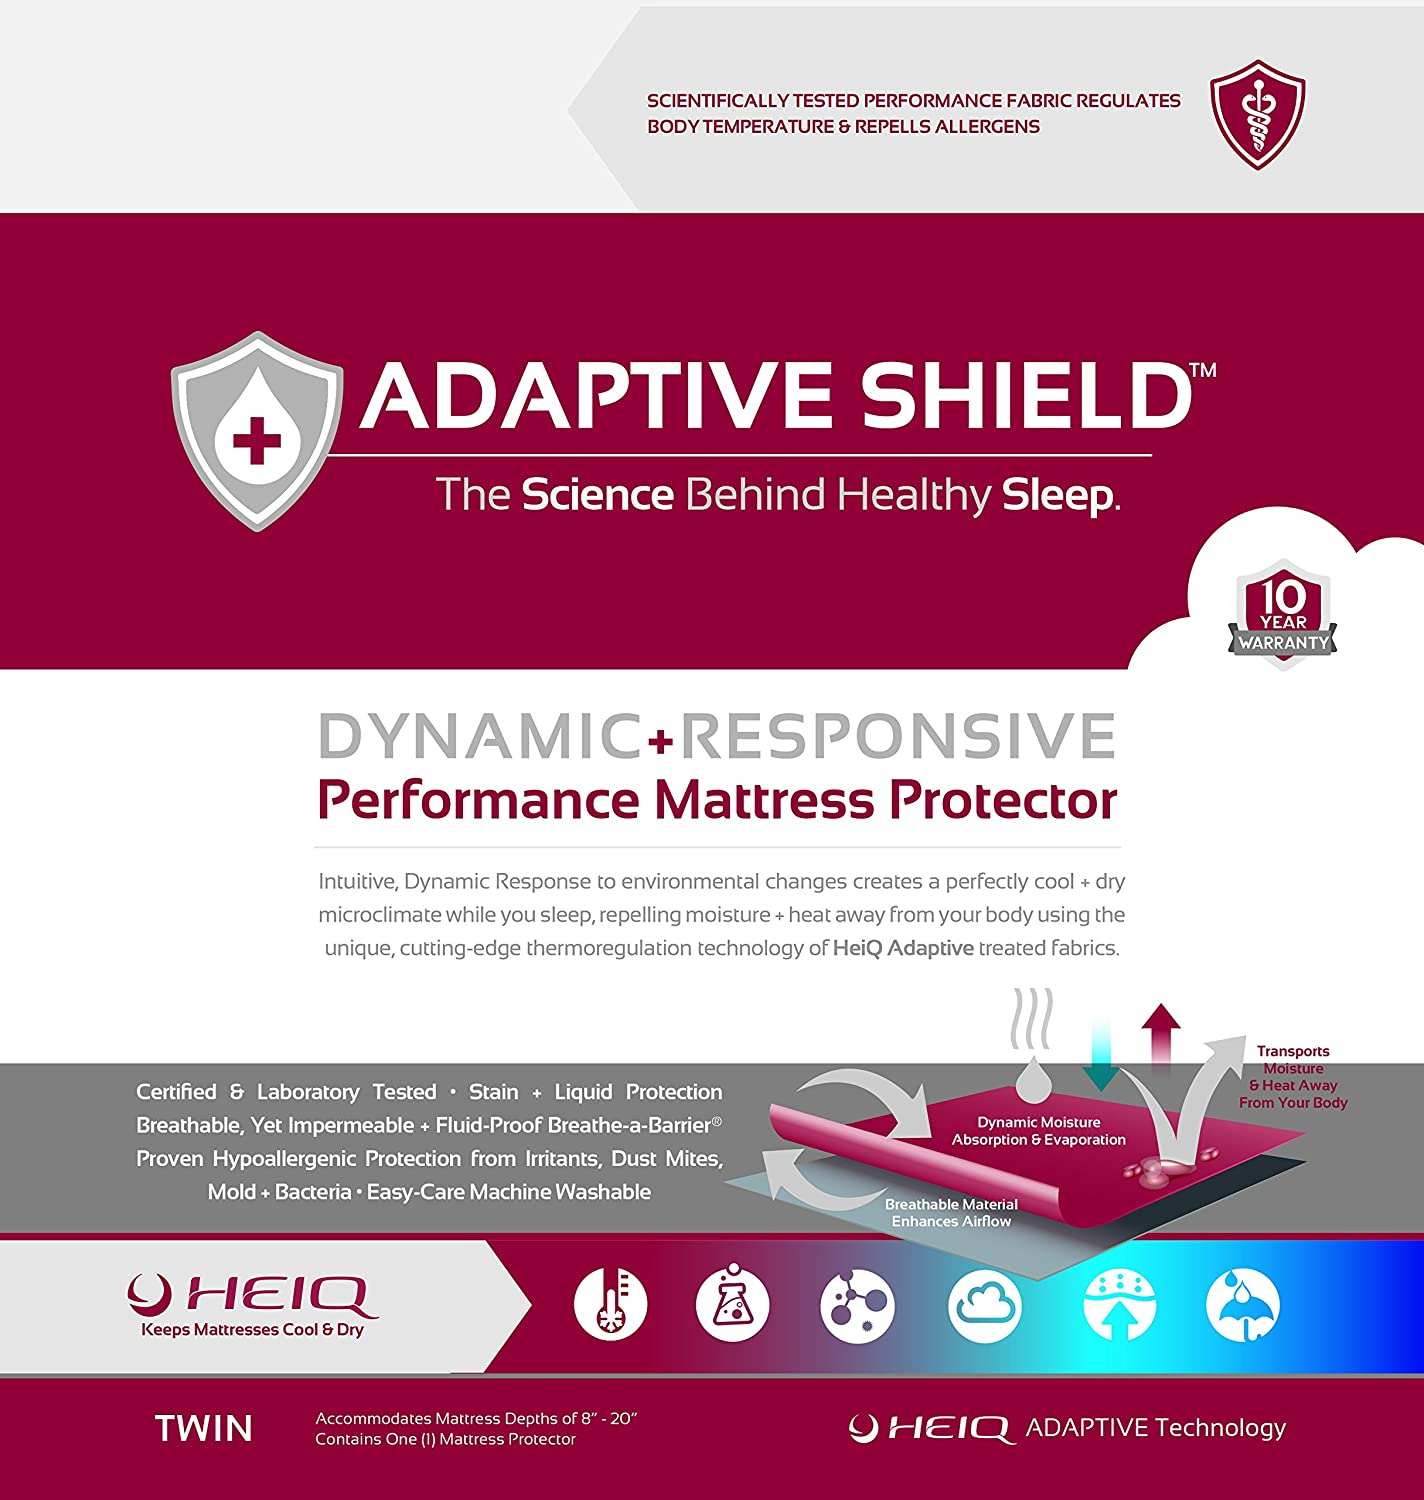 Adaptive Shield Premium Performance Mattress Protector - Lab Tested Allergy Free and Waterproof, Vinyl Free Noiseless Sleep, Crinkle Free, Machine Washable, and Compatible with All Mattresses (Twin)